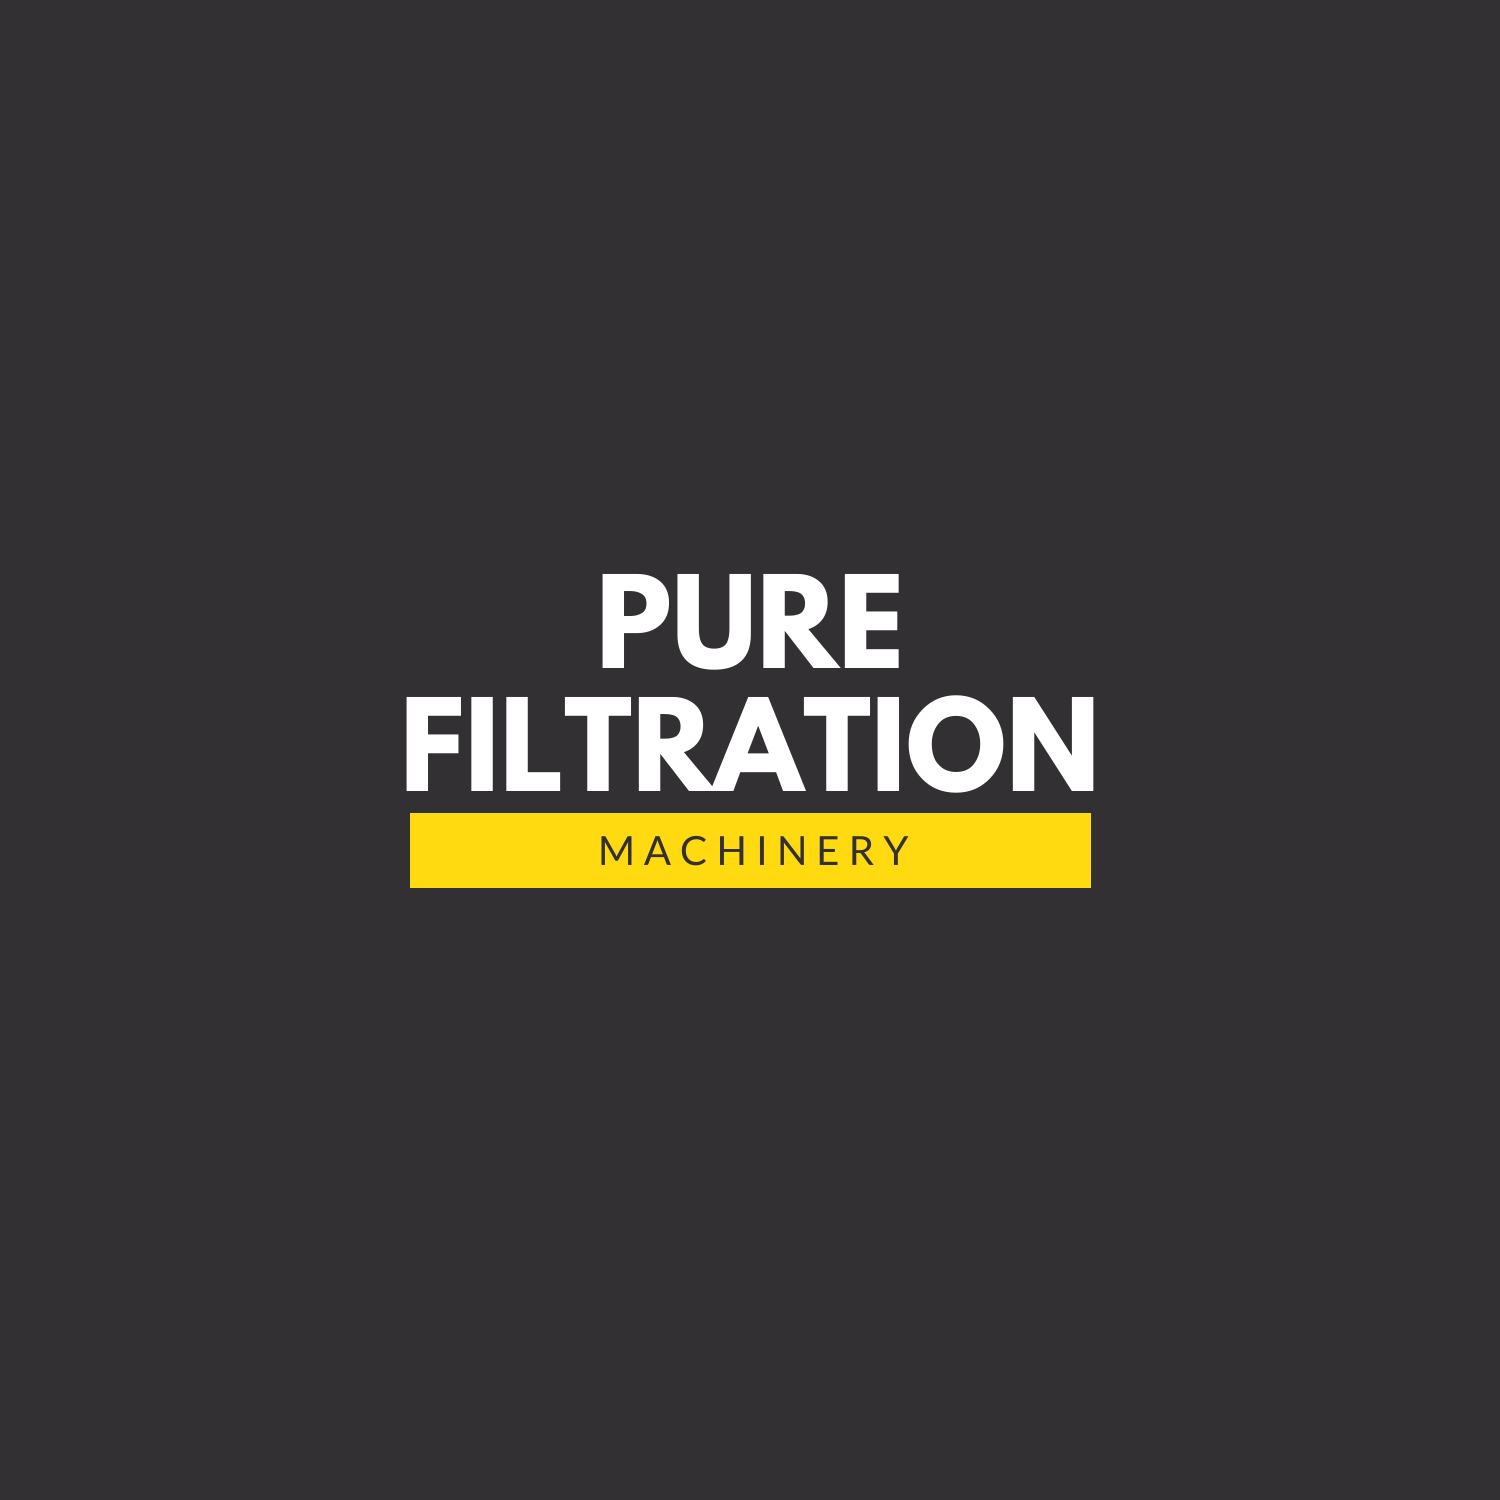 Pure Filtration Machinery